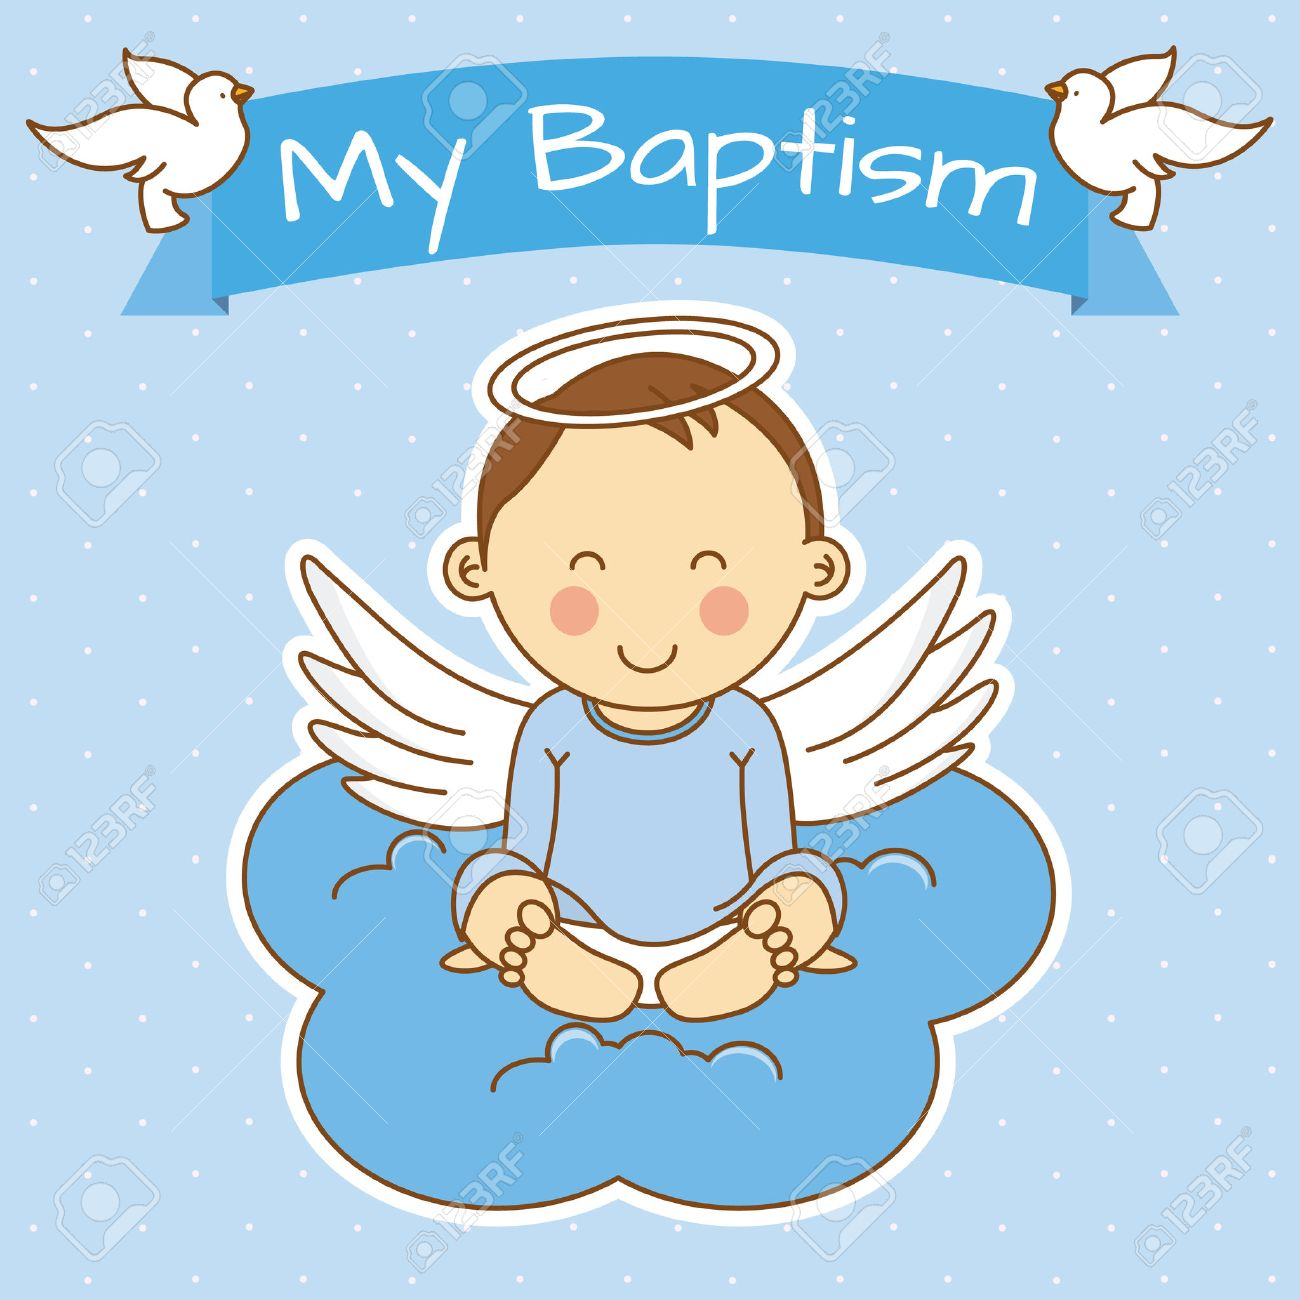 angel wings on a cloud boy baptism royalty free cliparts vectors